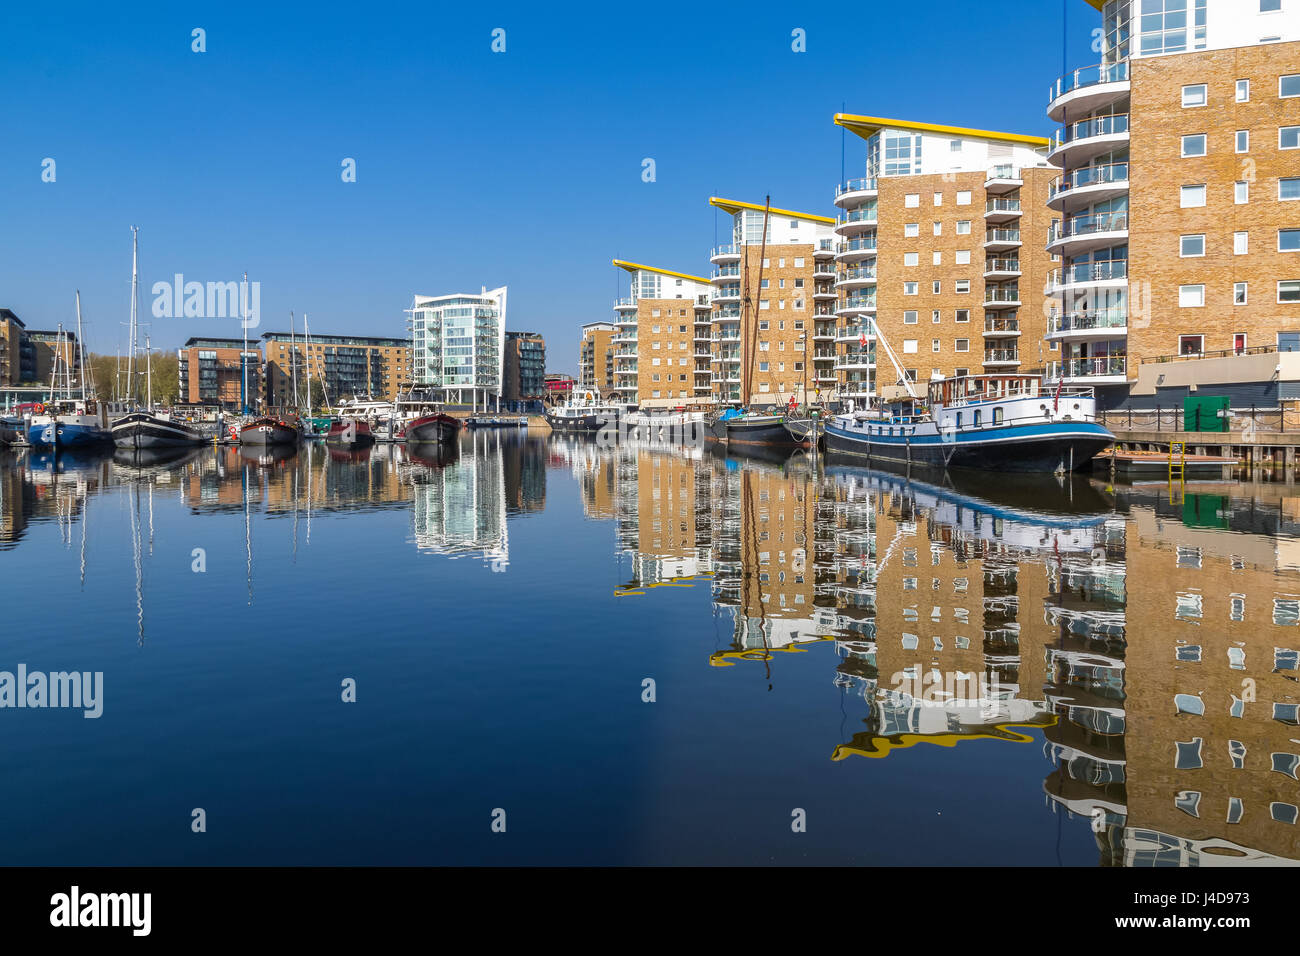 Waterside apartments at Limehouse Basin Marina  with Docklands Light Railway passing in the background - Stock Image